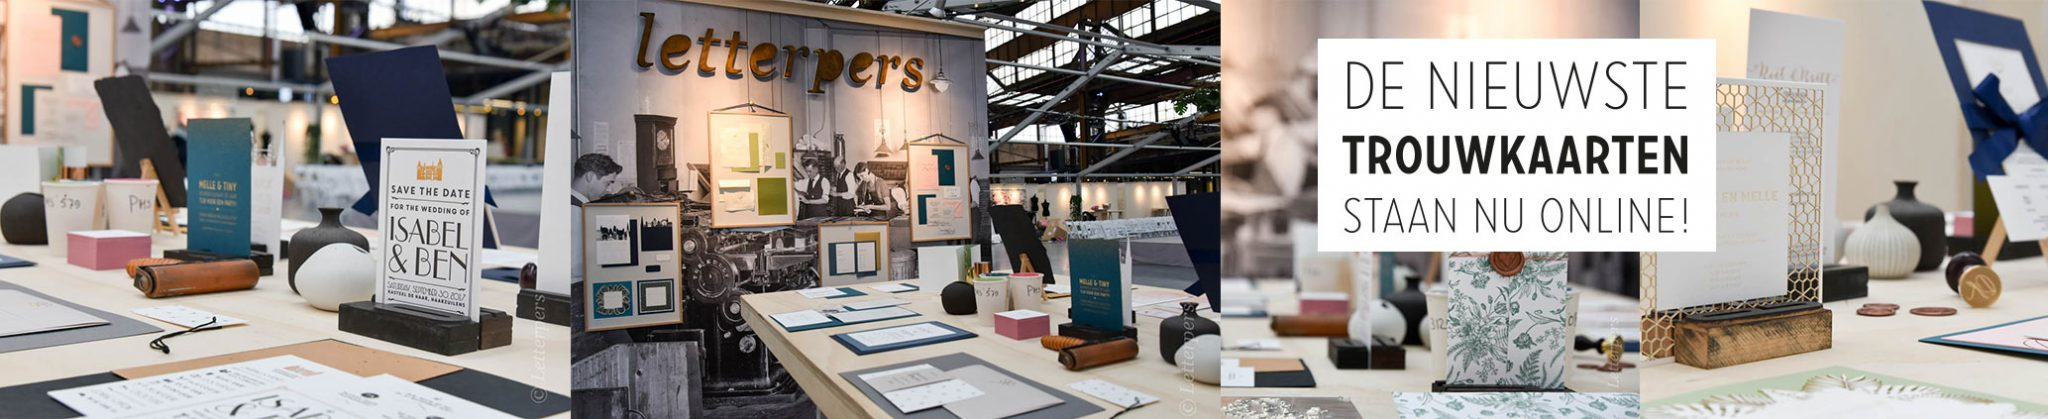 Letterpers stand op Love and Marriage beurs in de werkspoorkathedraal Utrecht